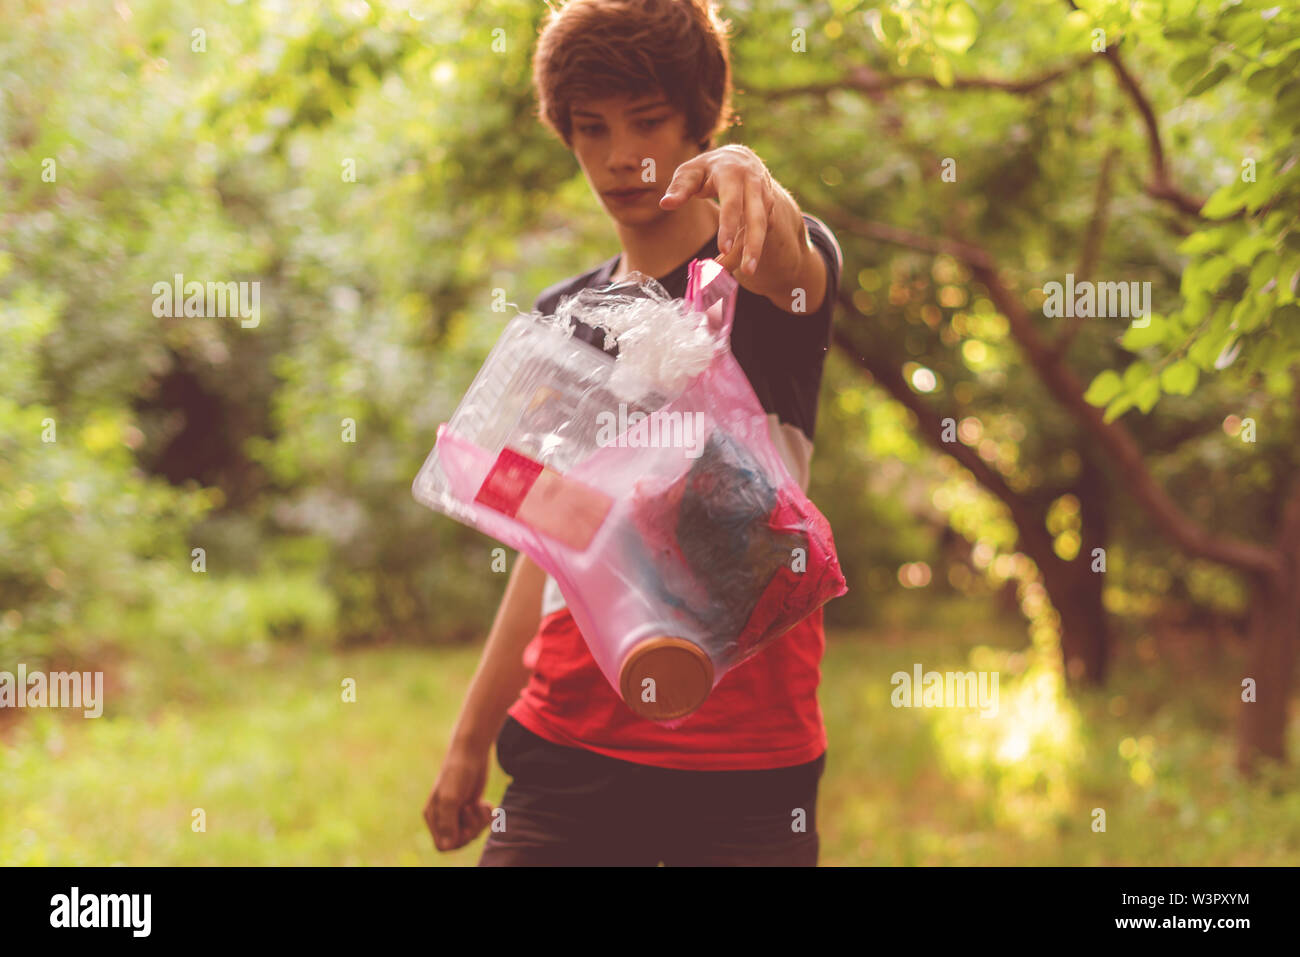 young person throw the plastic package with trash away in the nature park zone, environmental pollution - Stock Image